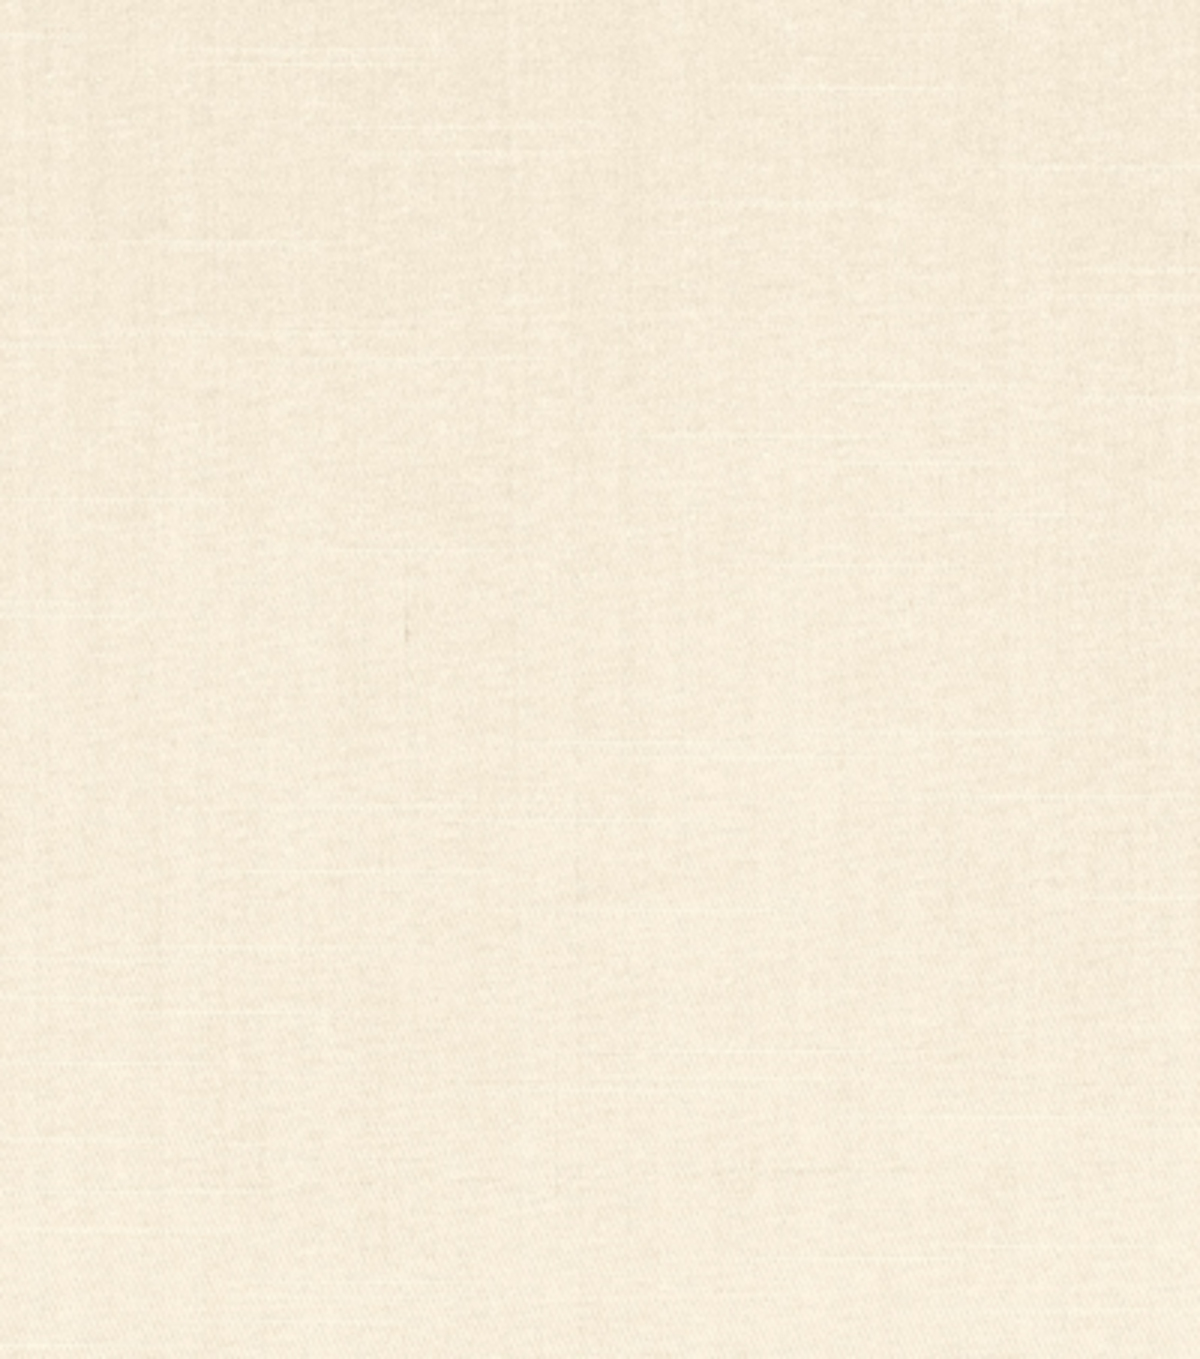 Home Decor 8\u0022x8\u0022 Fabric Swatch-Richloom Studio Aspen Ivory